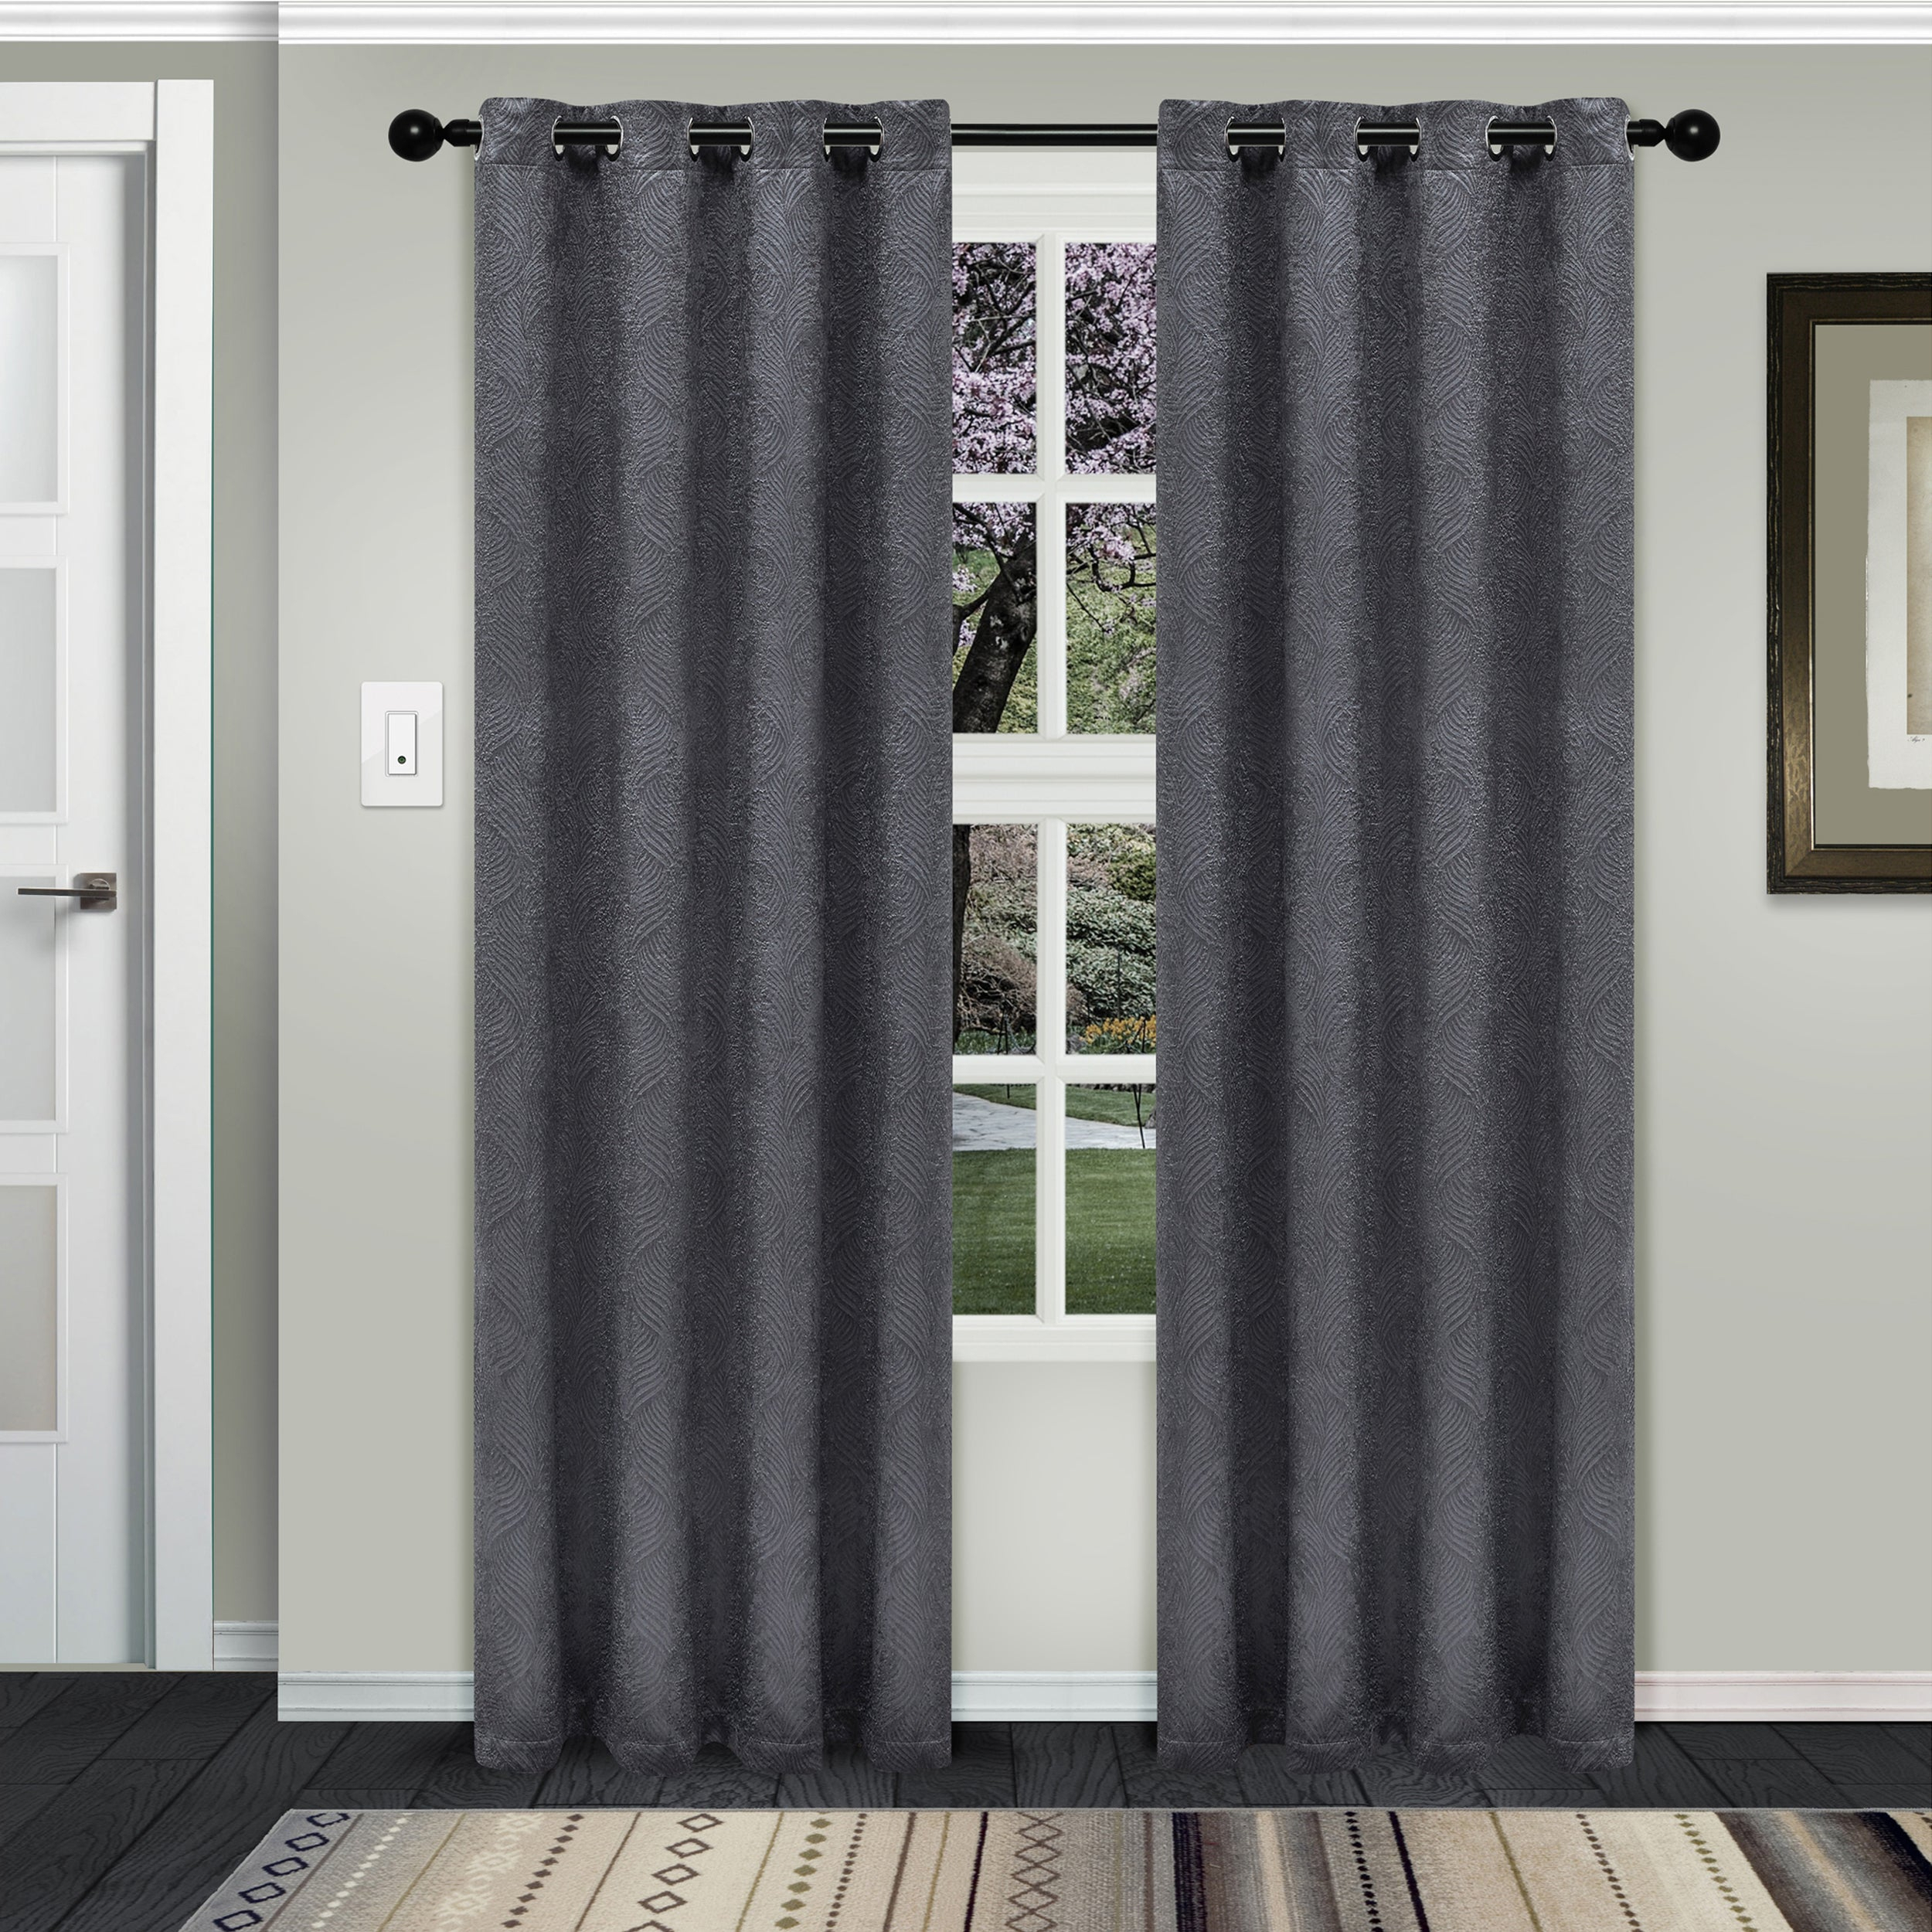 Superior Waverly Insulated Thermal Blackout Grommet Curtain Panel Pair Throughout Gracewood Hollow Tucakovic Energy Efficient Fabric Blackout Curtains (View 3 of 20)